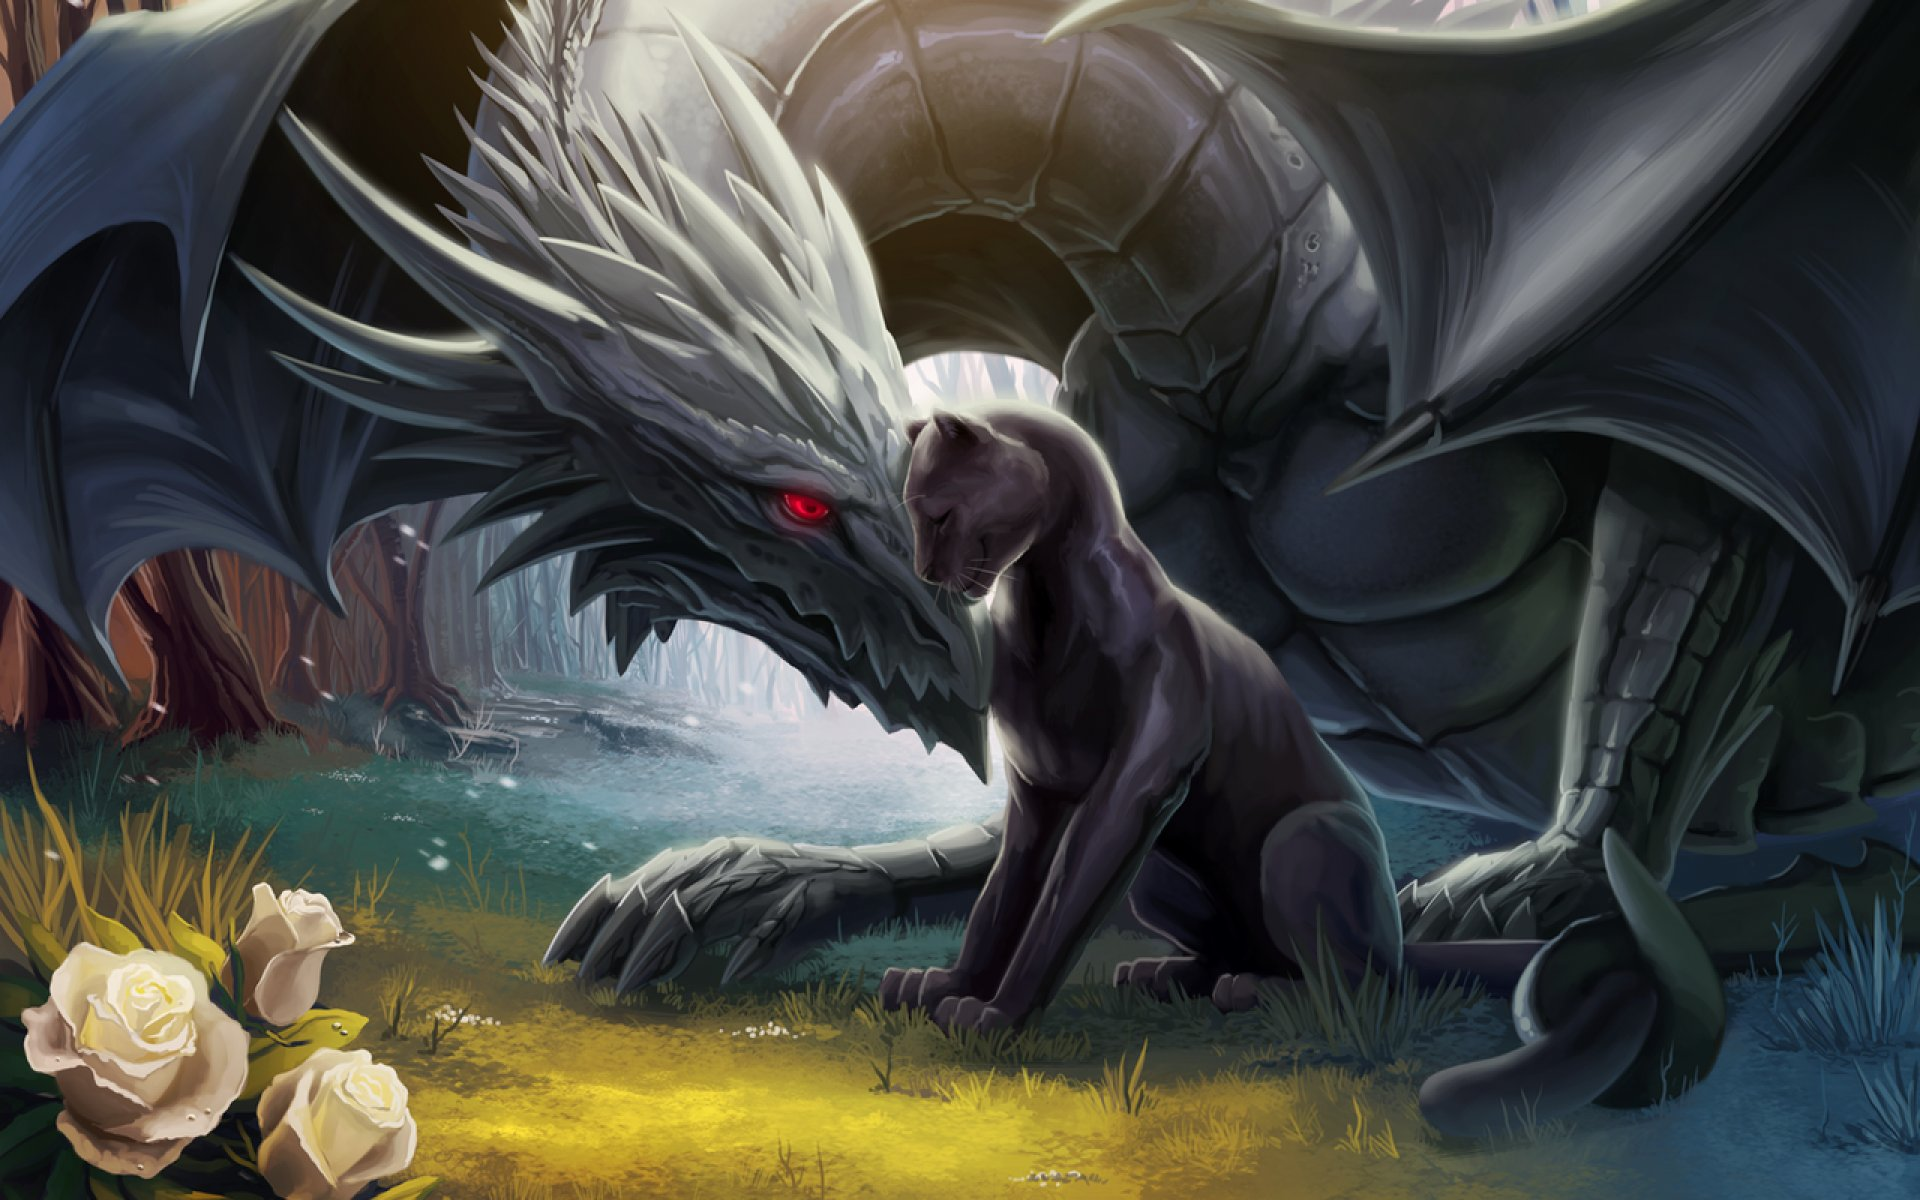 Dragon fantasy artwork art dragons wallpaper | 1920x1200 ...